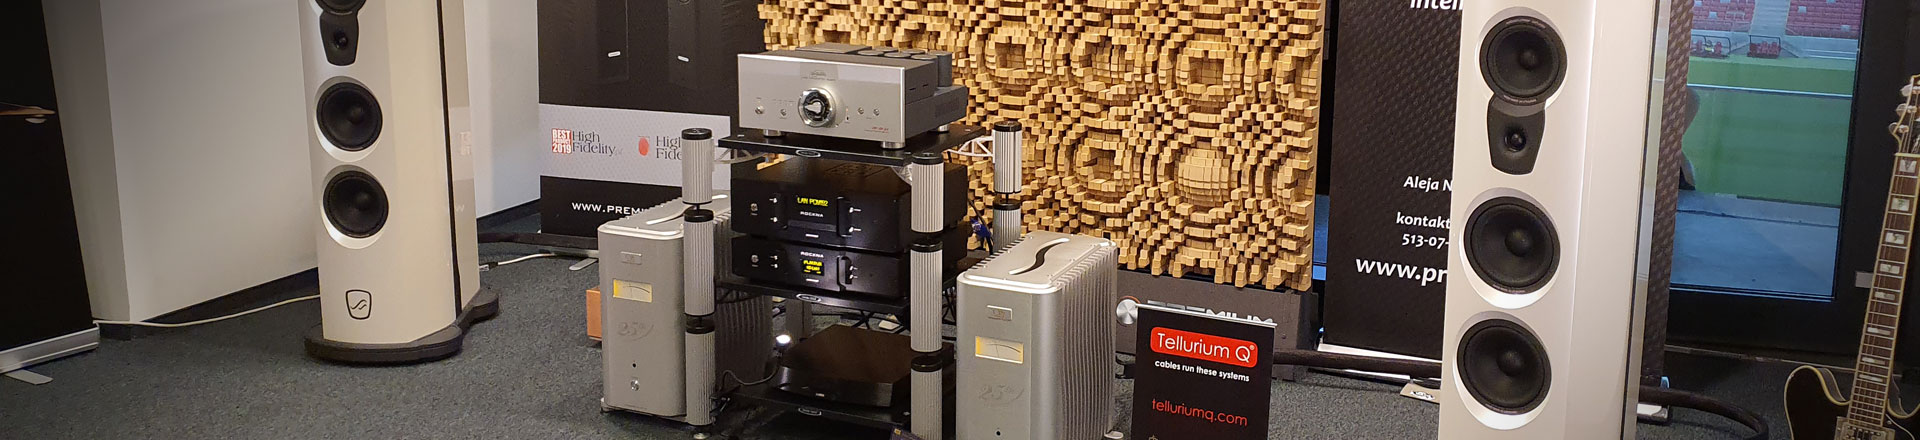 PREMIUM SOUND - AUDIOSOLUTIONS VIRTUOSO M Hi-End za pół ceny (137 / Stadion) cz. 2